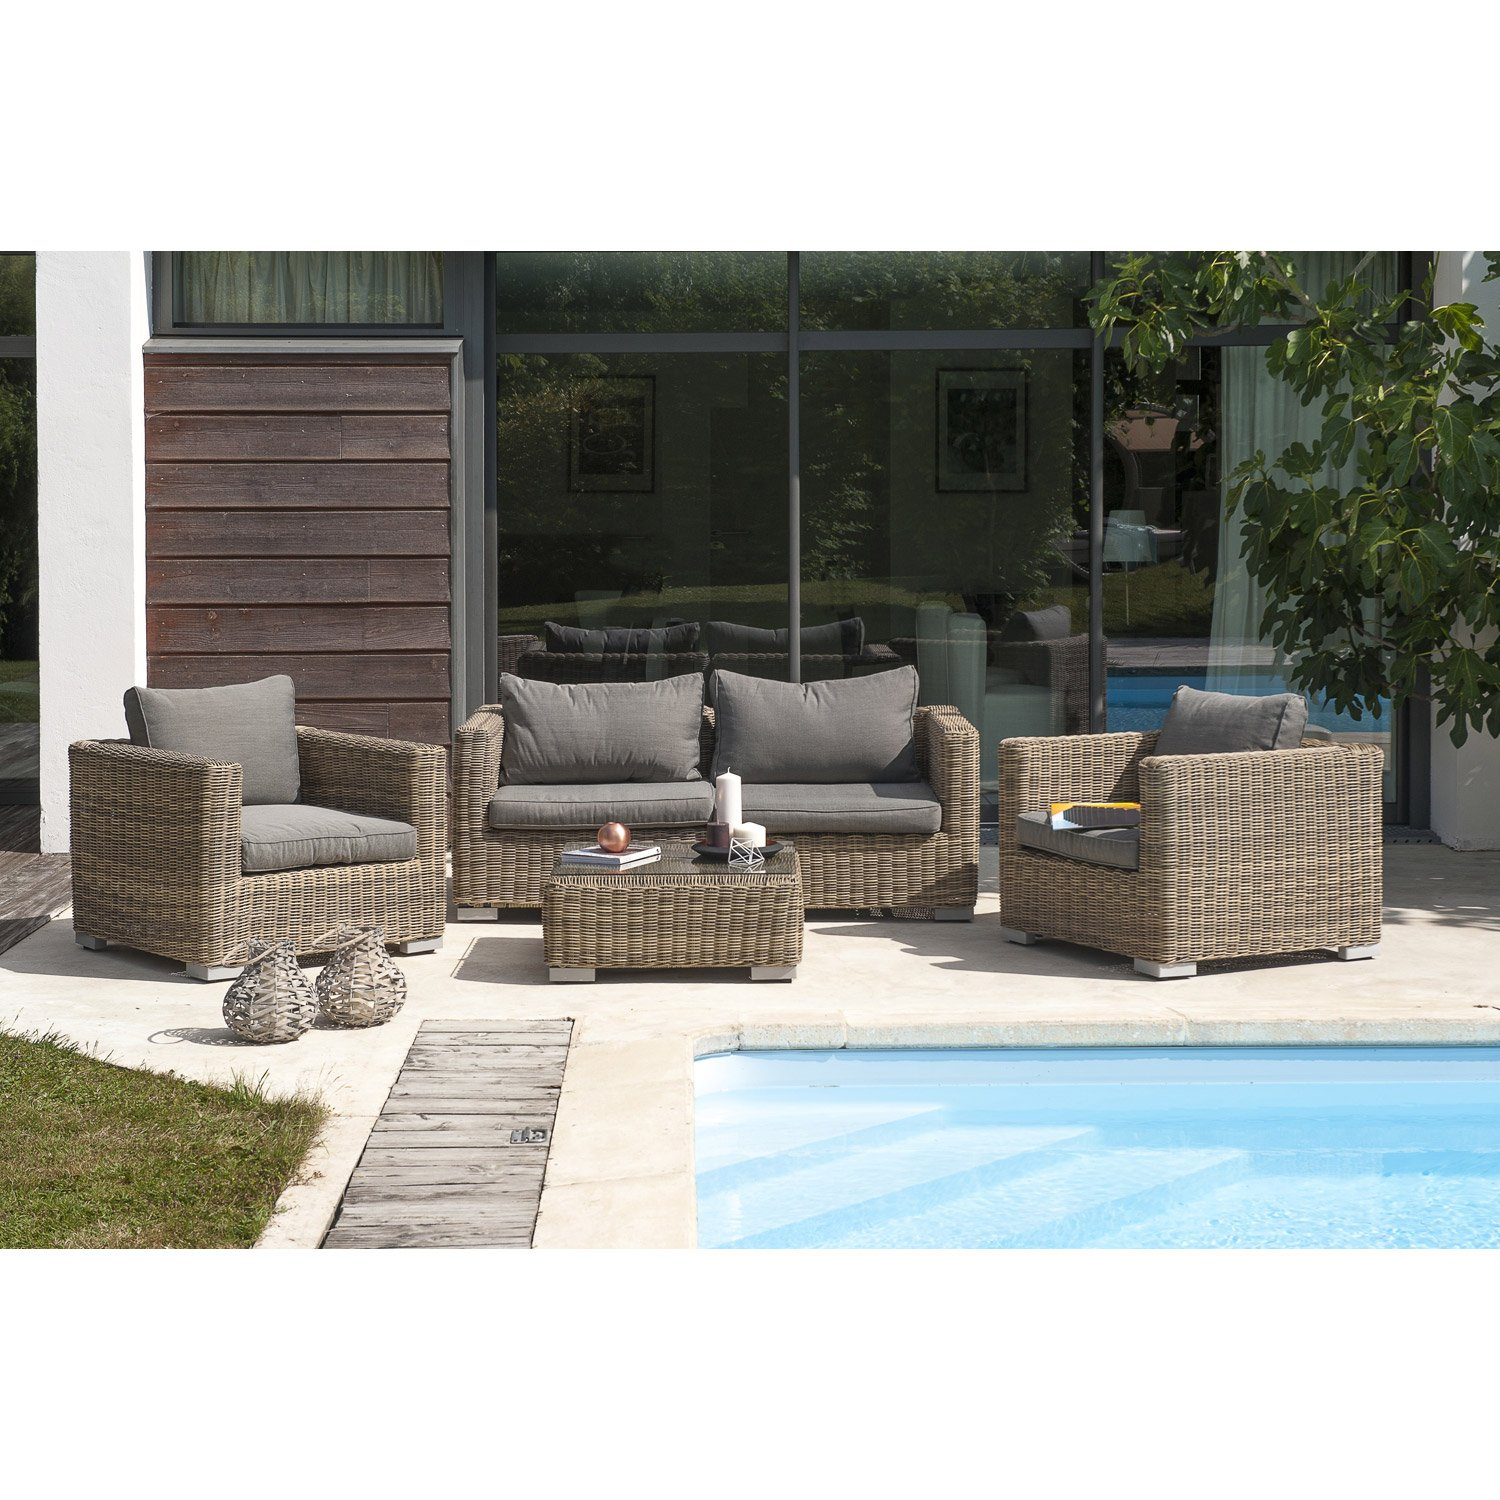 Table salon de jardin leroy merlin